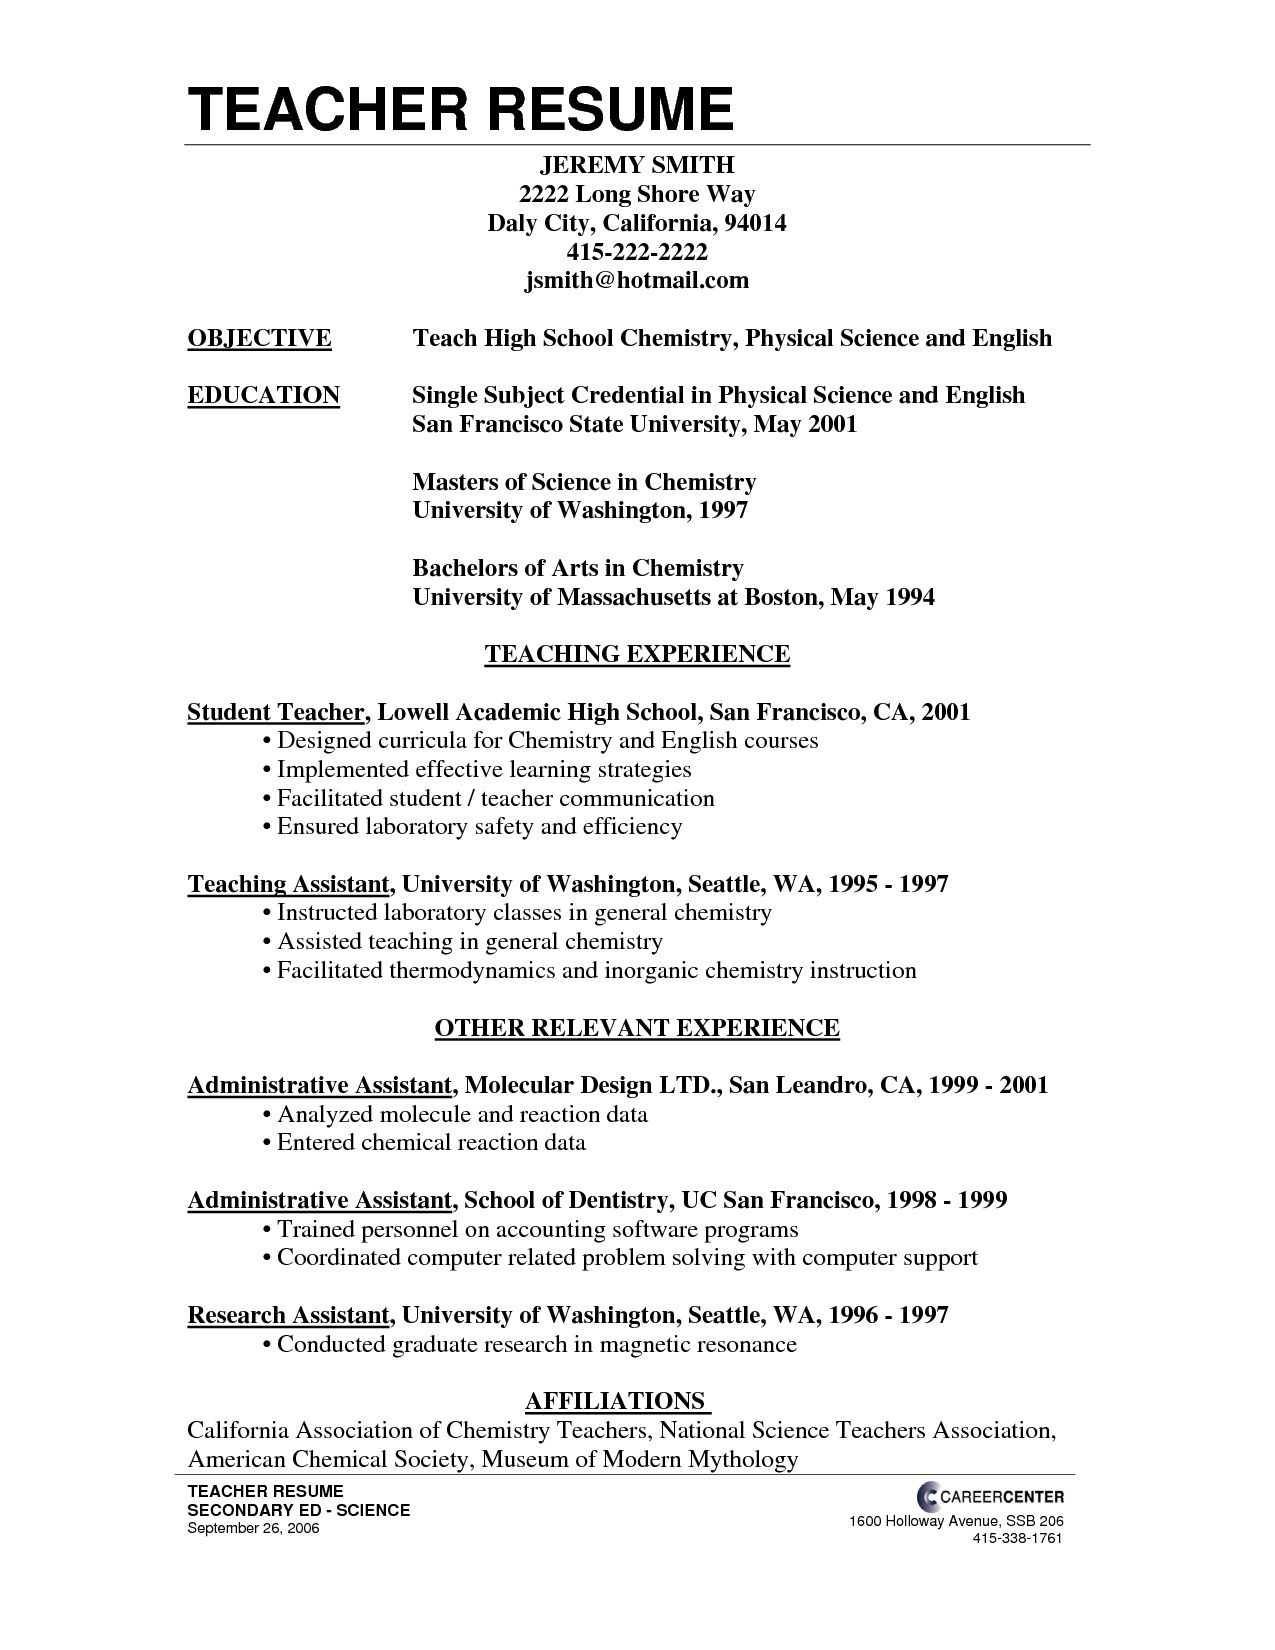 high school teacher resume jobresumesample com 547 high high school teacher resume jobresumesample com 547 high